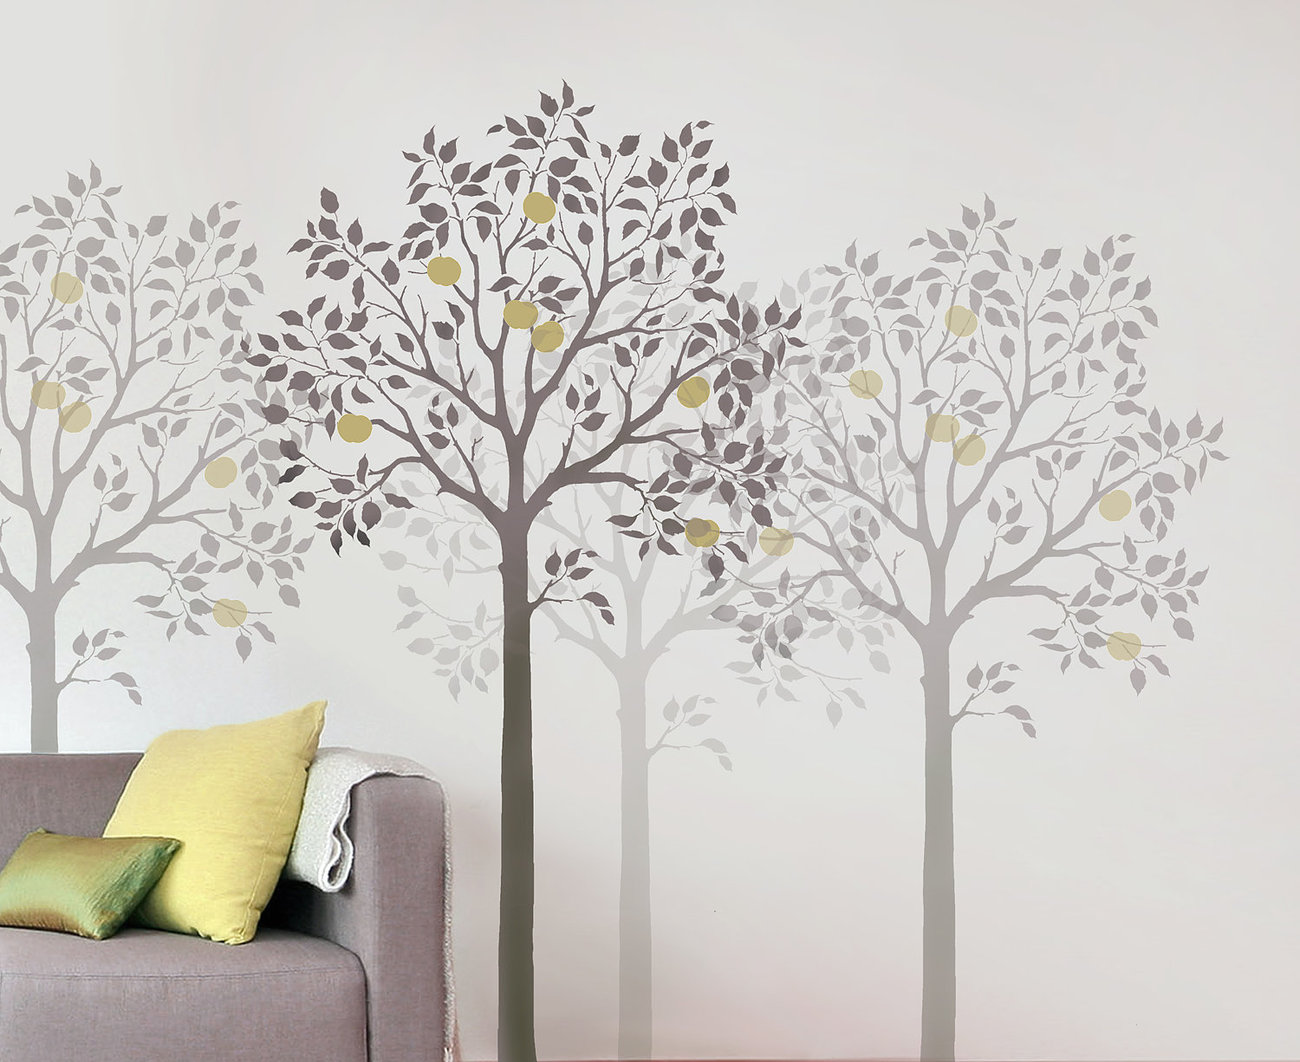 paint templates for walls - large fruit tree stencil easy reusable wall stencils for